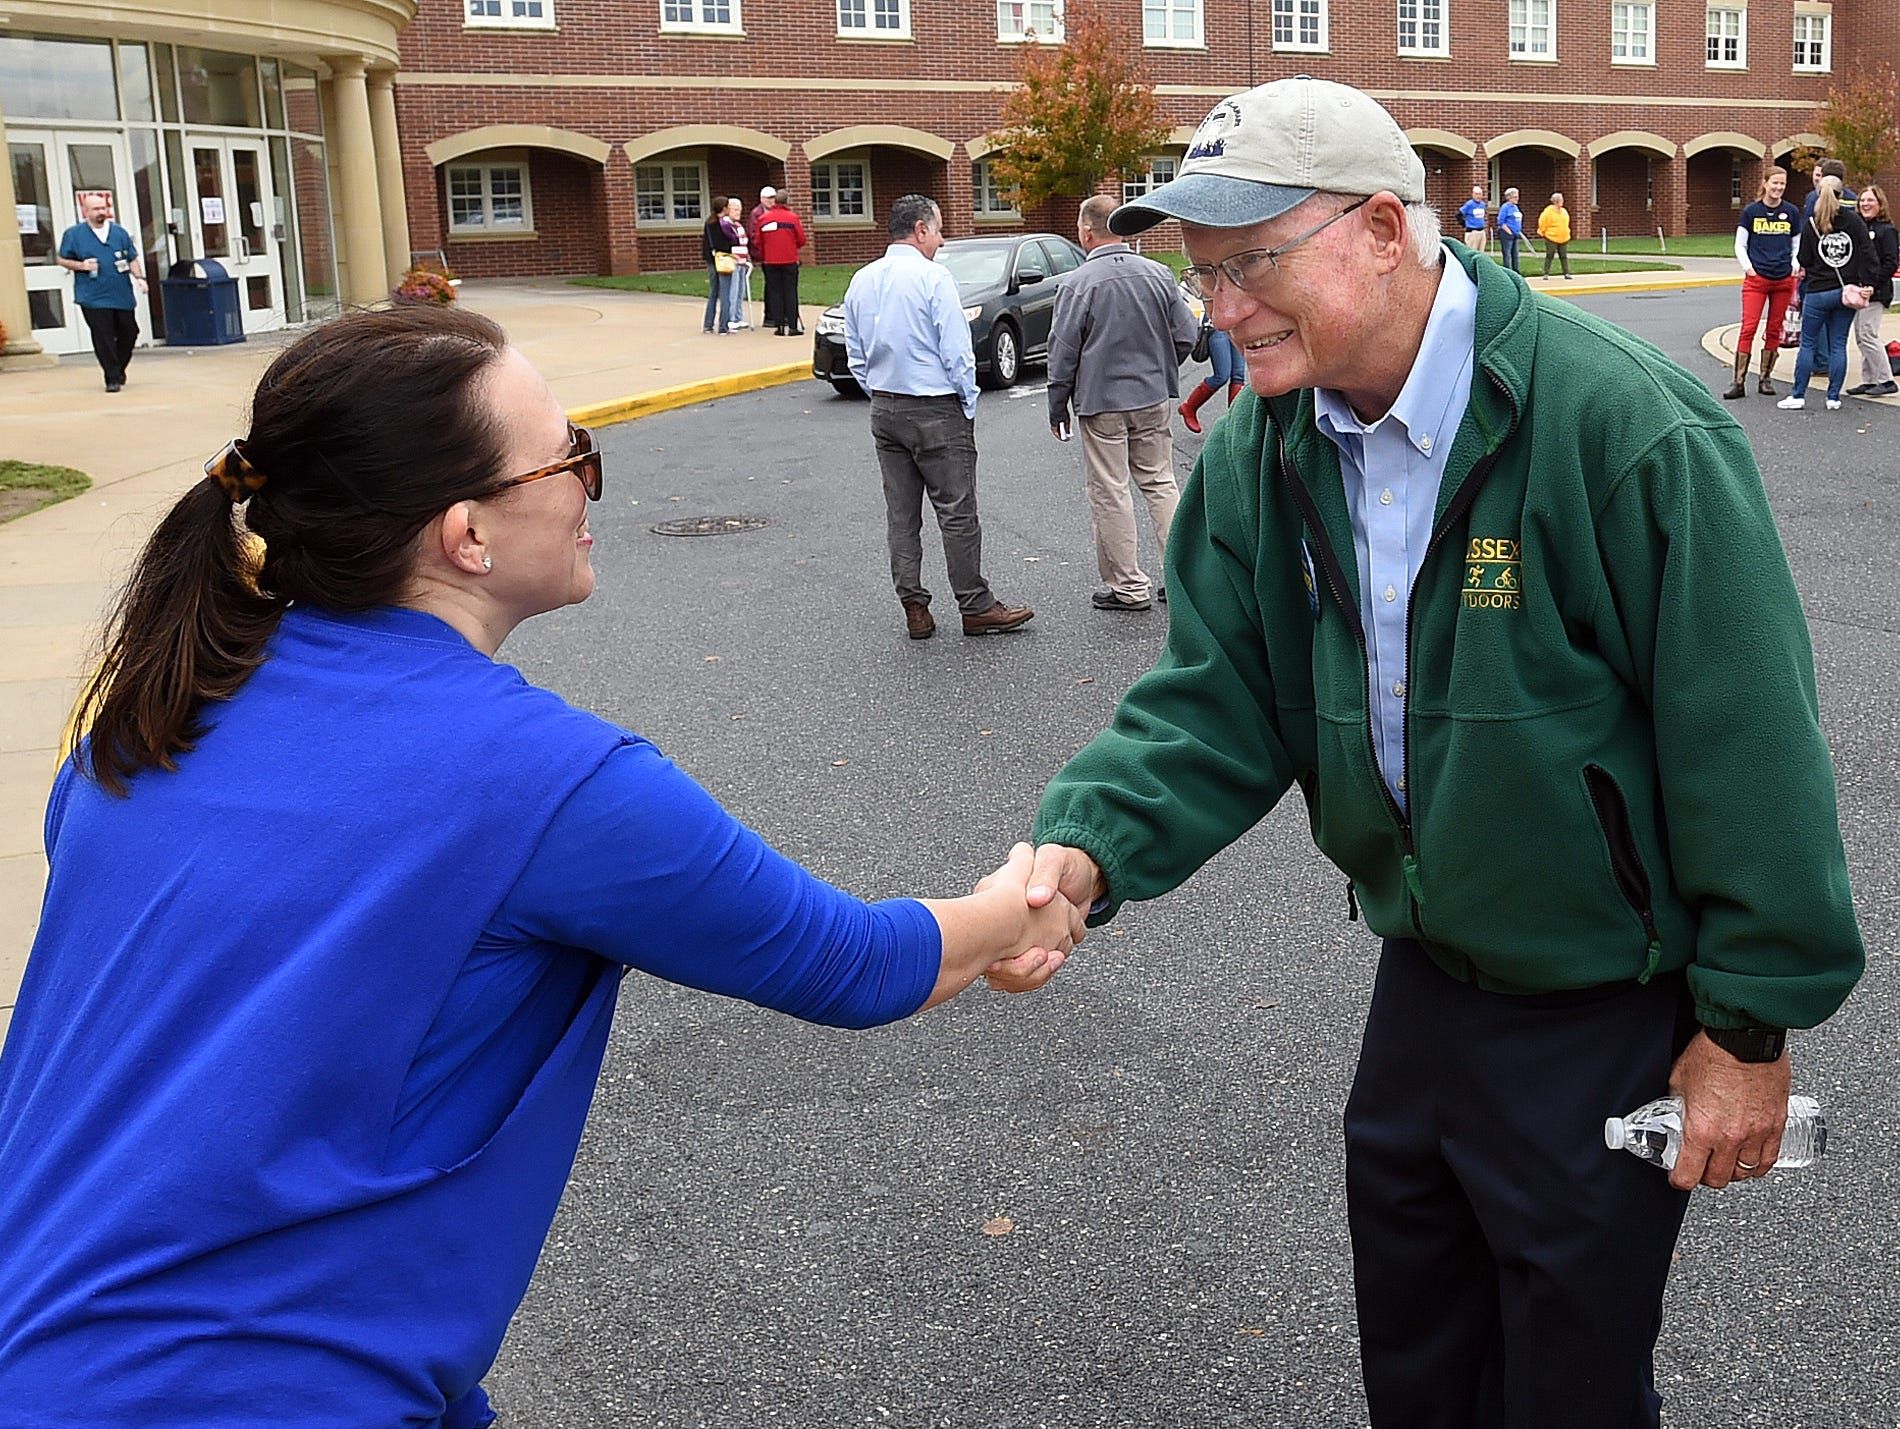 Dave Baker candidate for State Senate greets voters at Cape Henlopen High School near Lewes as turnout in eastern Sussex County has been steady at polling places as candidates still seek supporters for their support. Special to the News Journal / CHUCK SNYDER